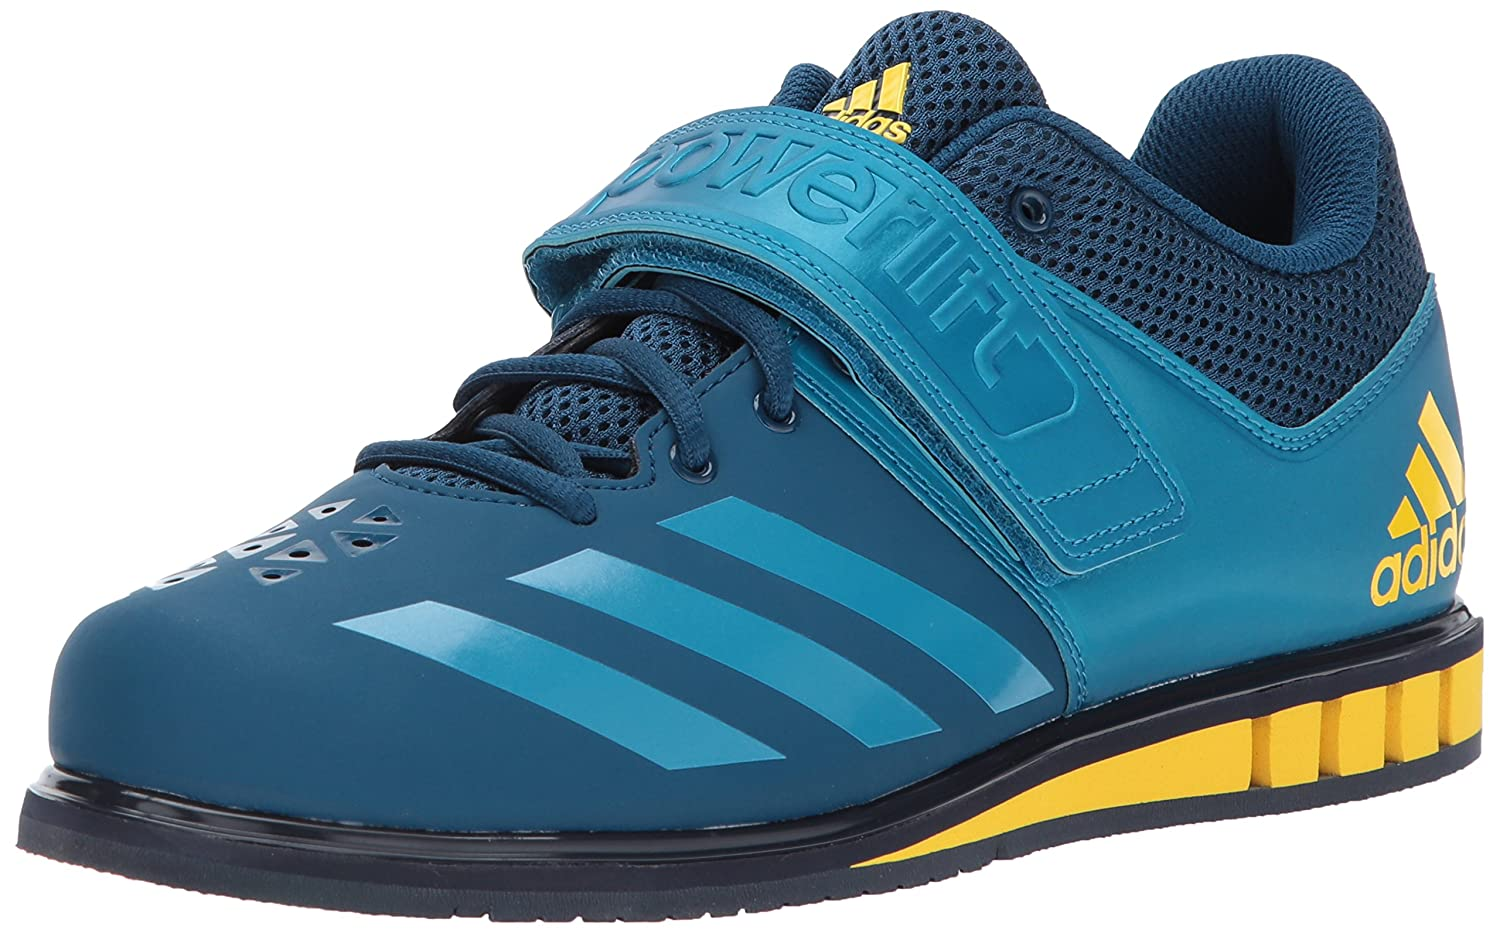 bluee Night Mystery Petrol Legend Ink adidas Powerlift.3.1 shoes Men's Weightlifting